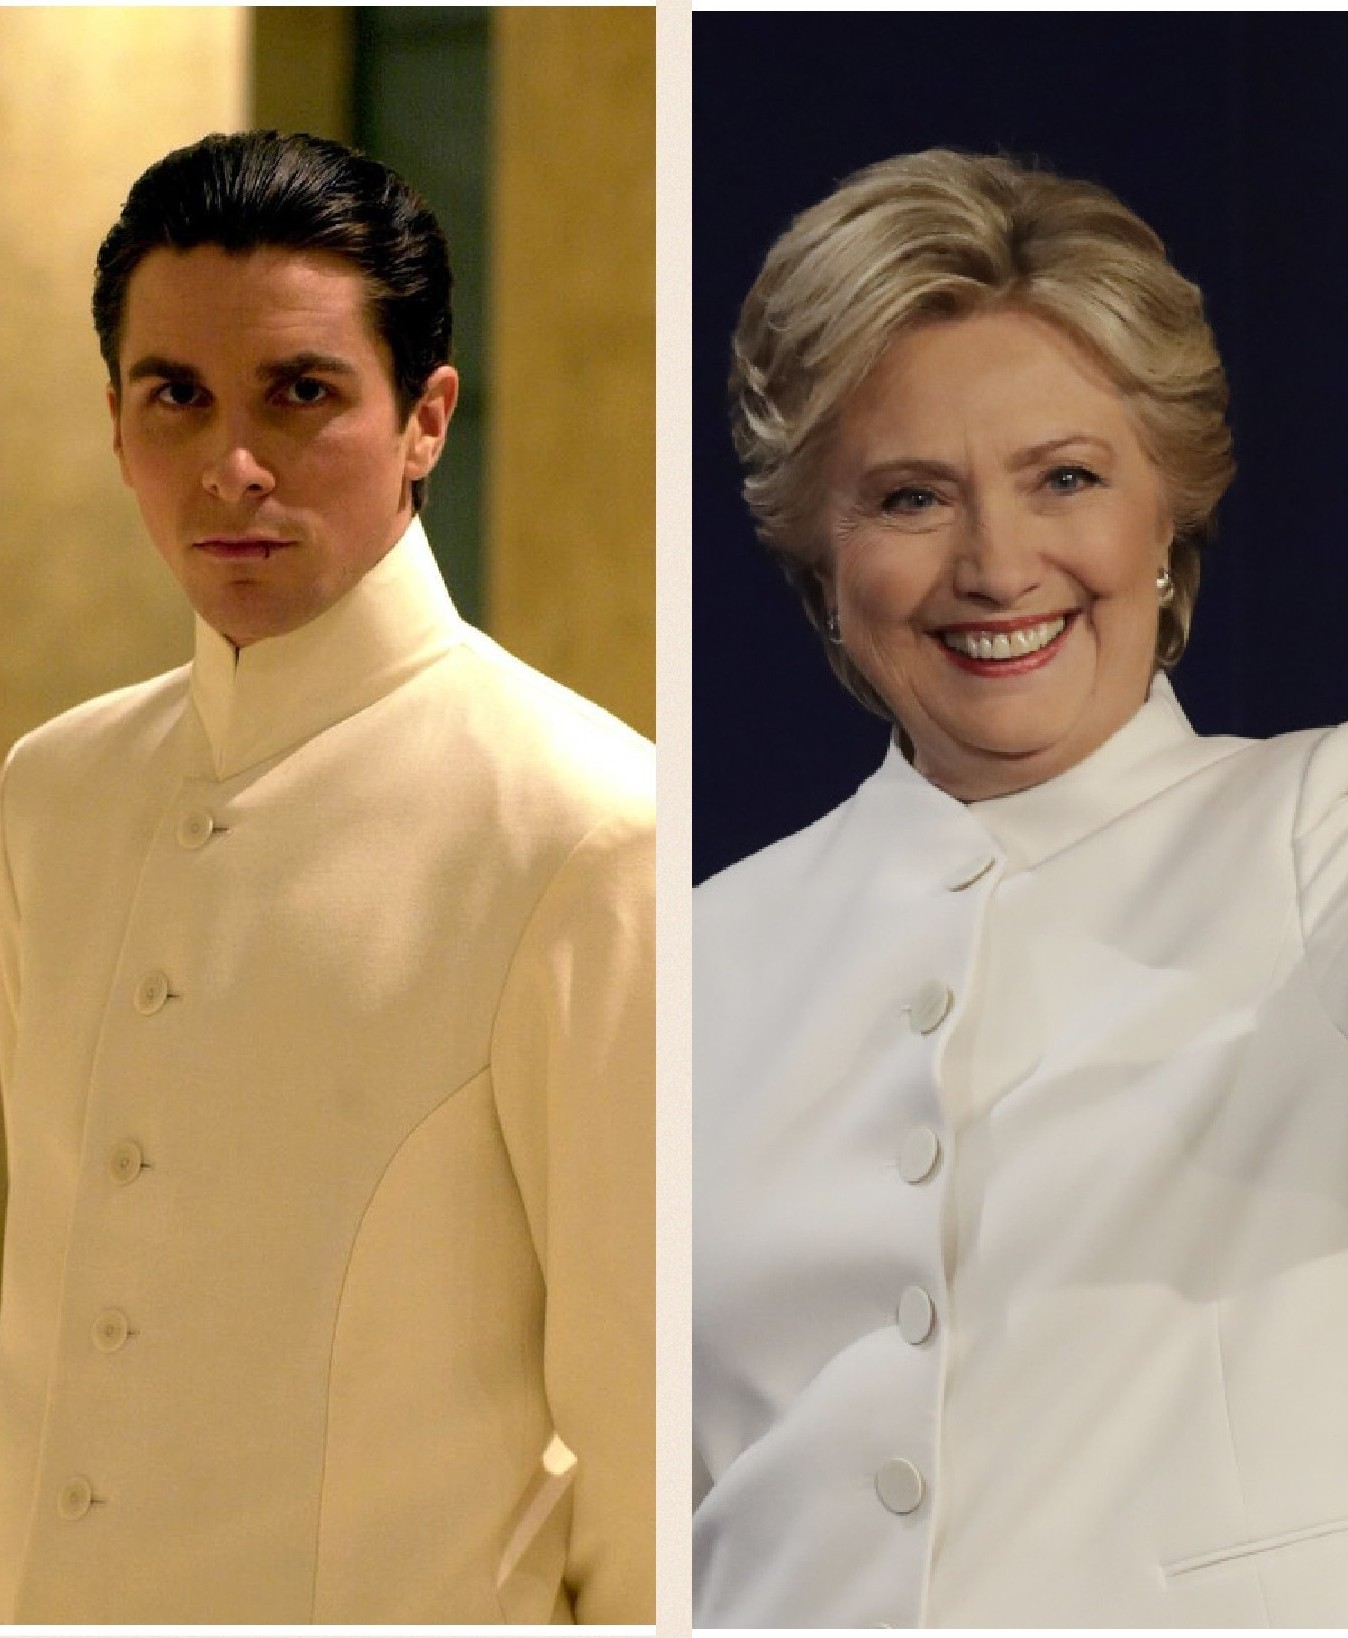 Hilary Clinton dressed as Christian Bale.